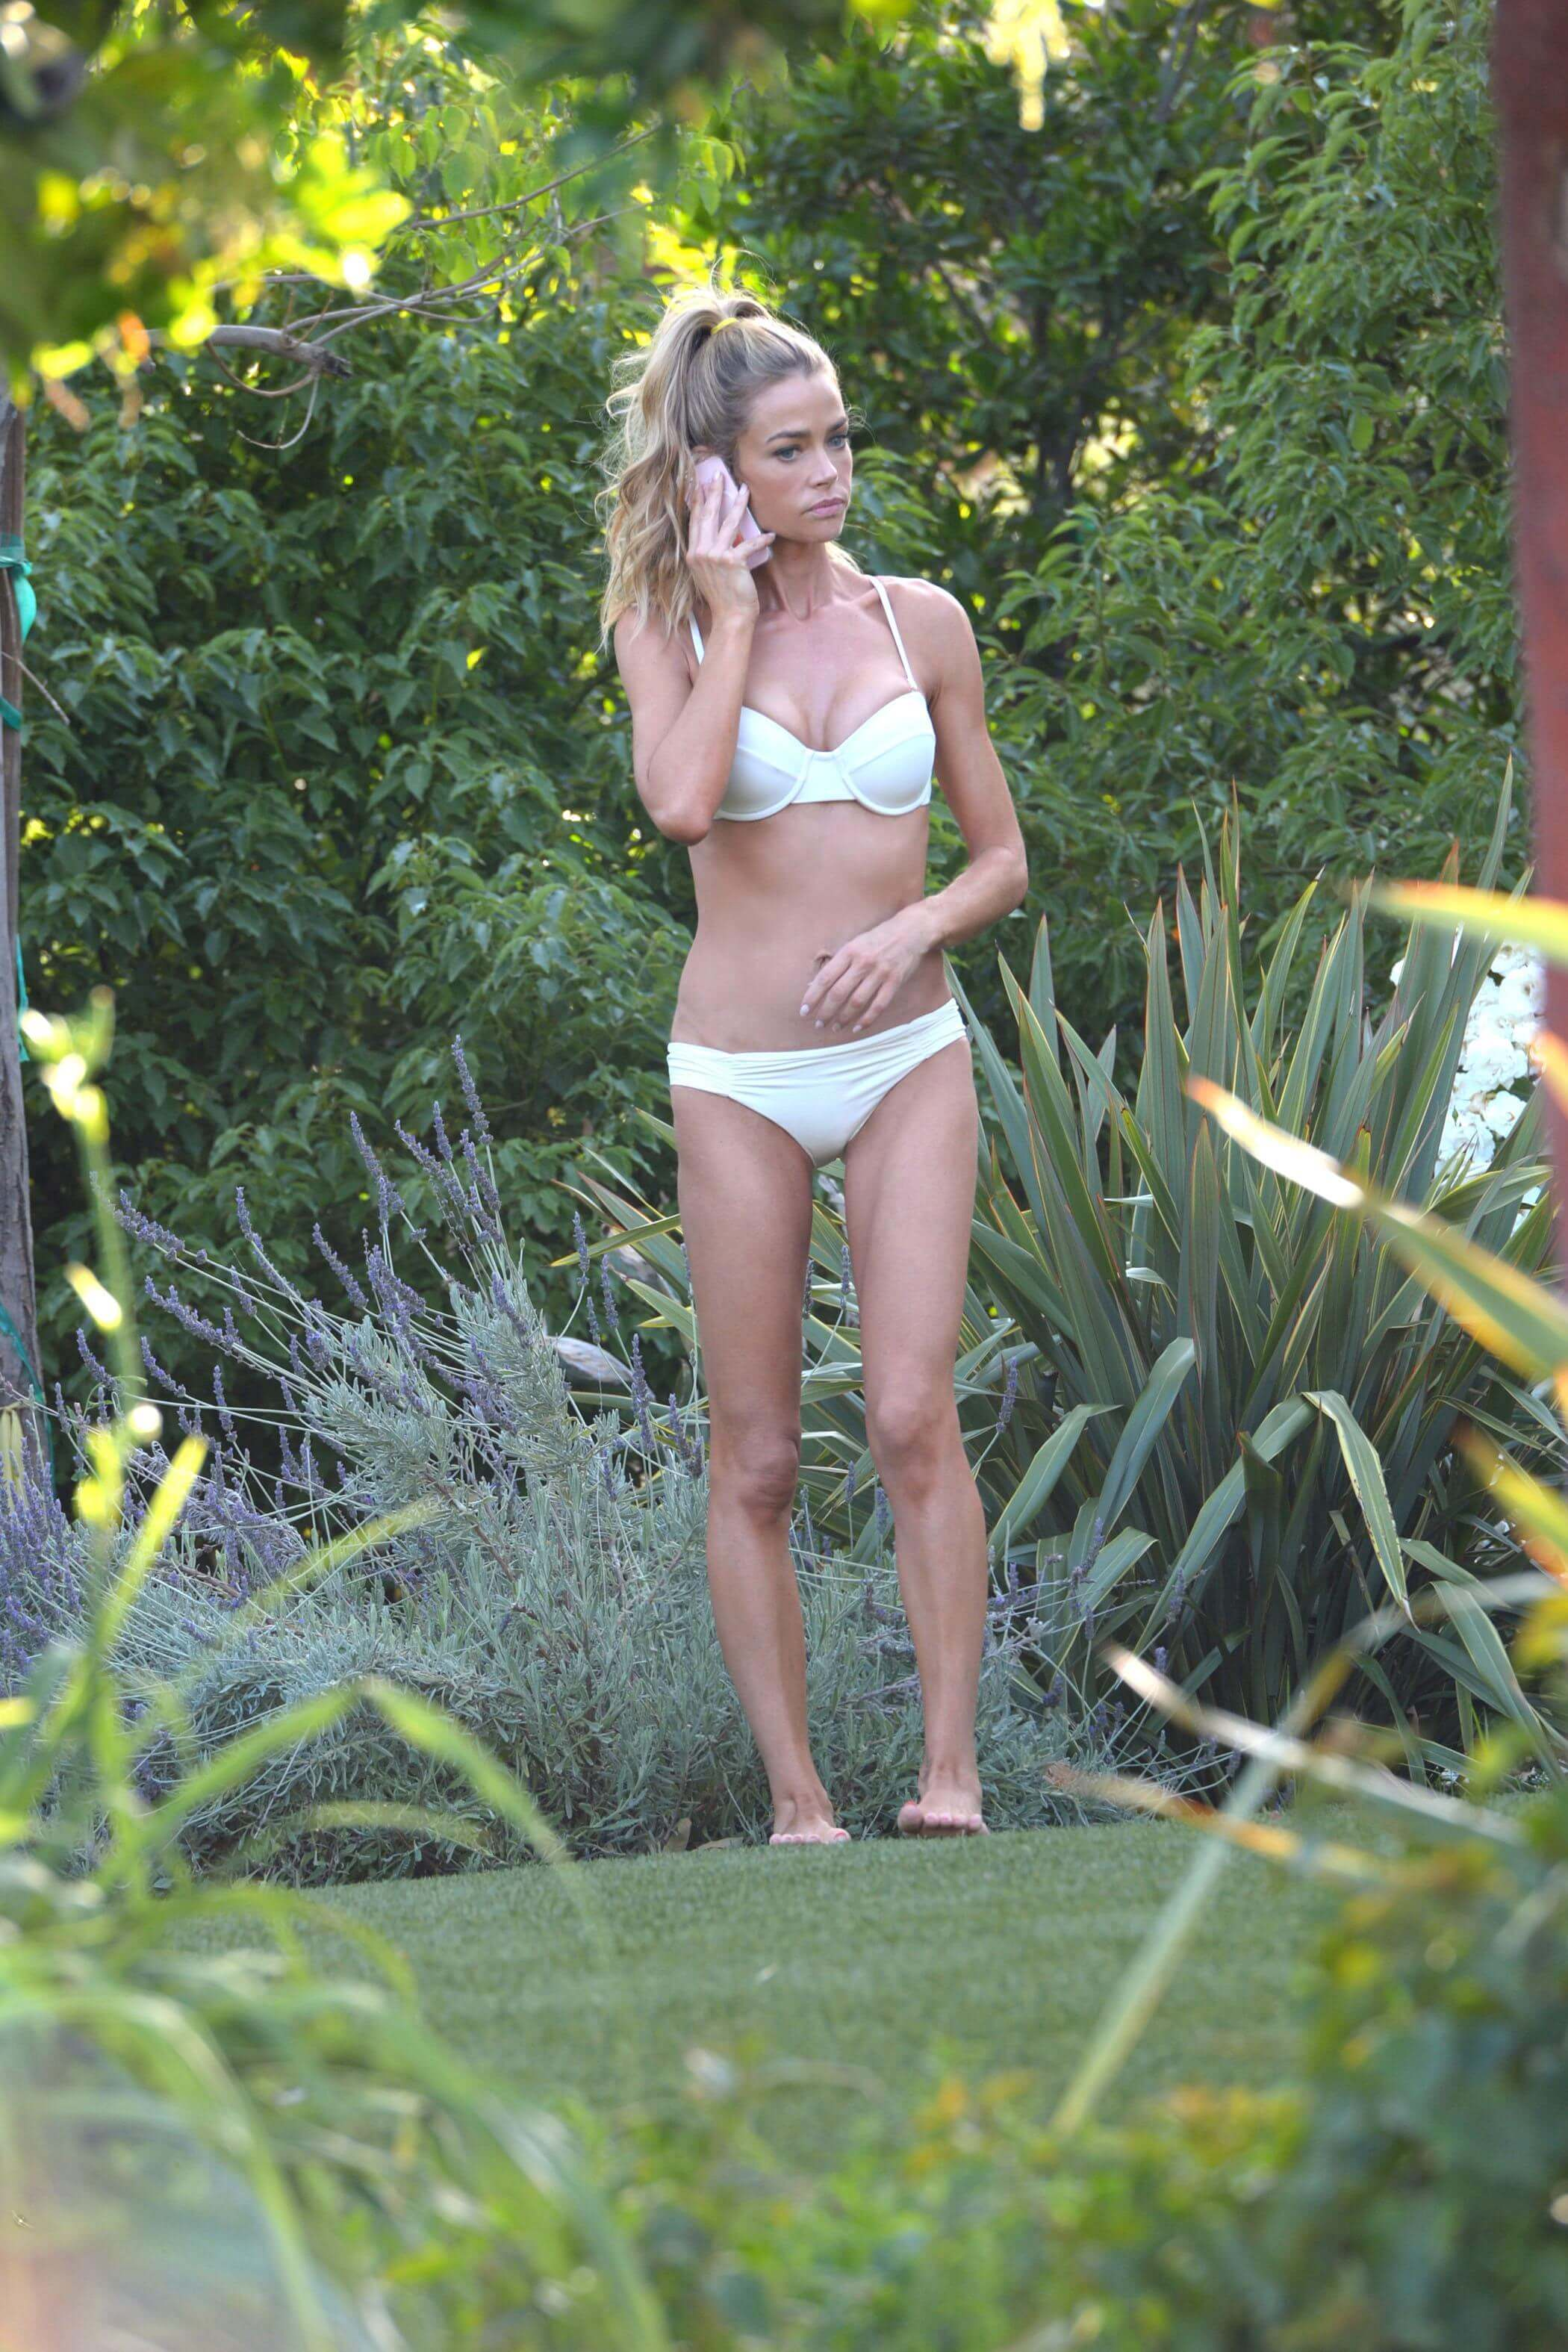 Denise richards Hot in White Bikini